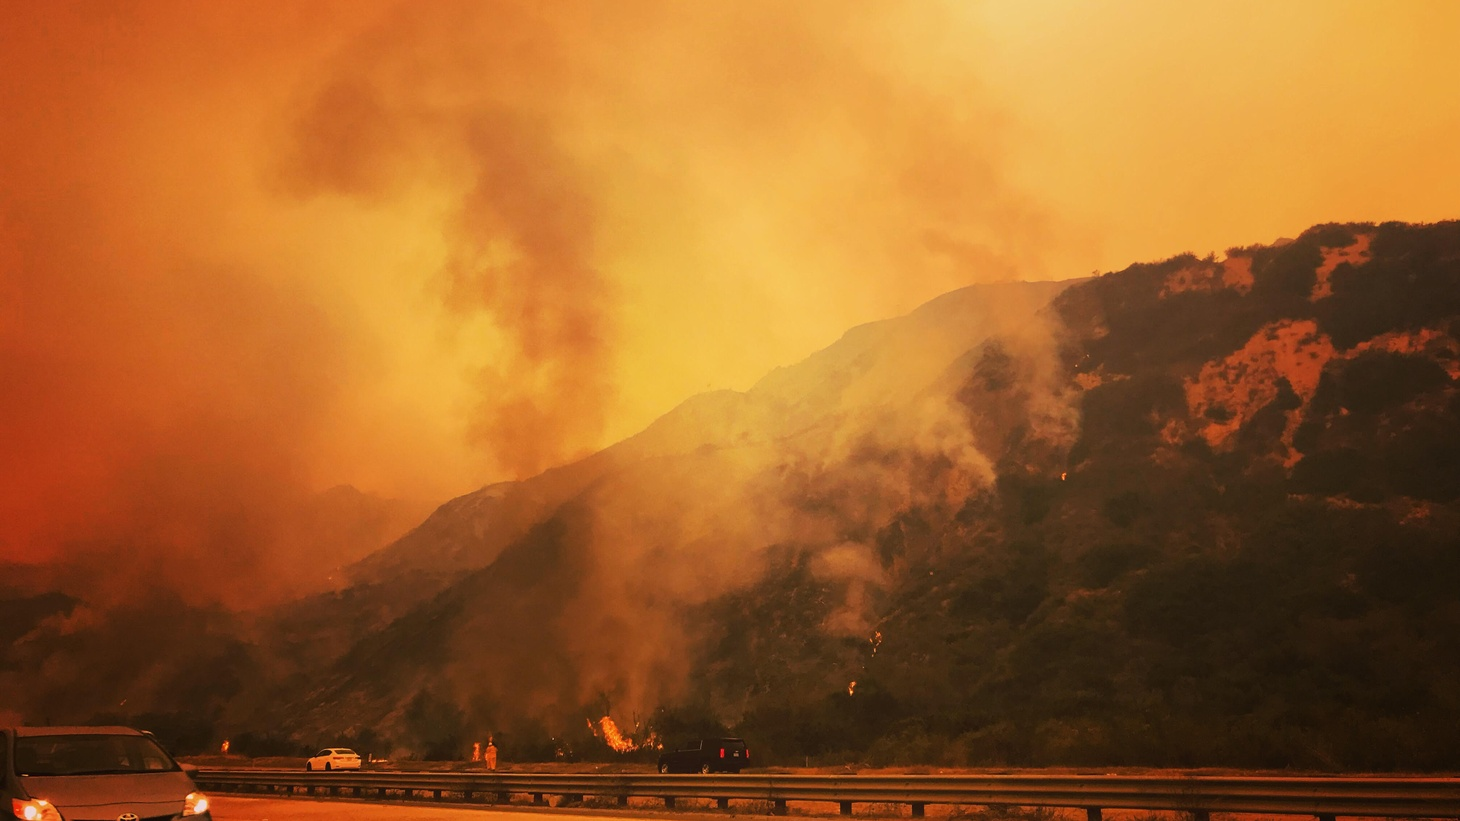 The Thomas Fire has burned more than 132,000 acres in Ventura County, and taken down hundreds of homes and other structures. We take a look at the current dangers, and speak with those beginning to assess the damage.